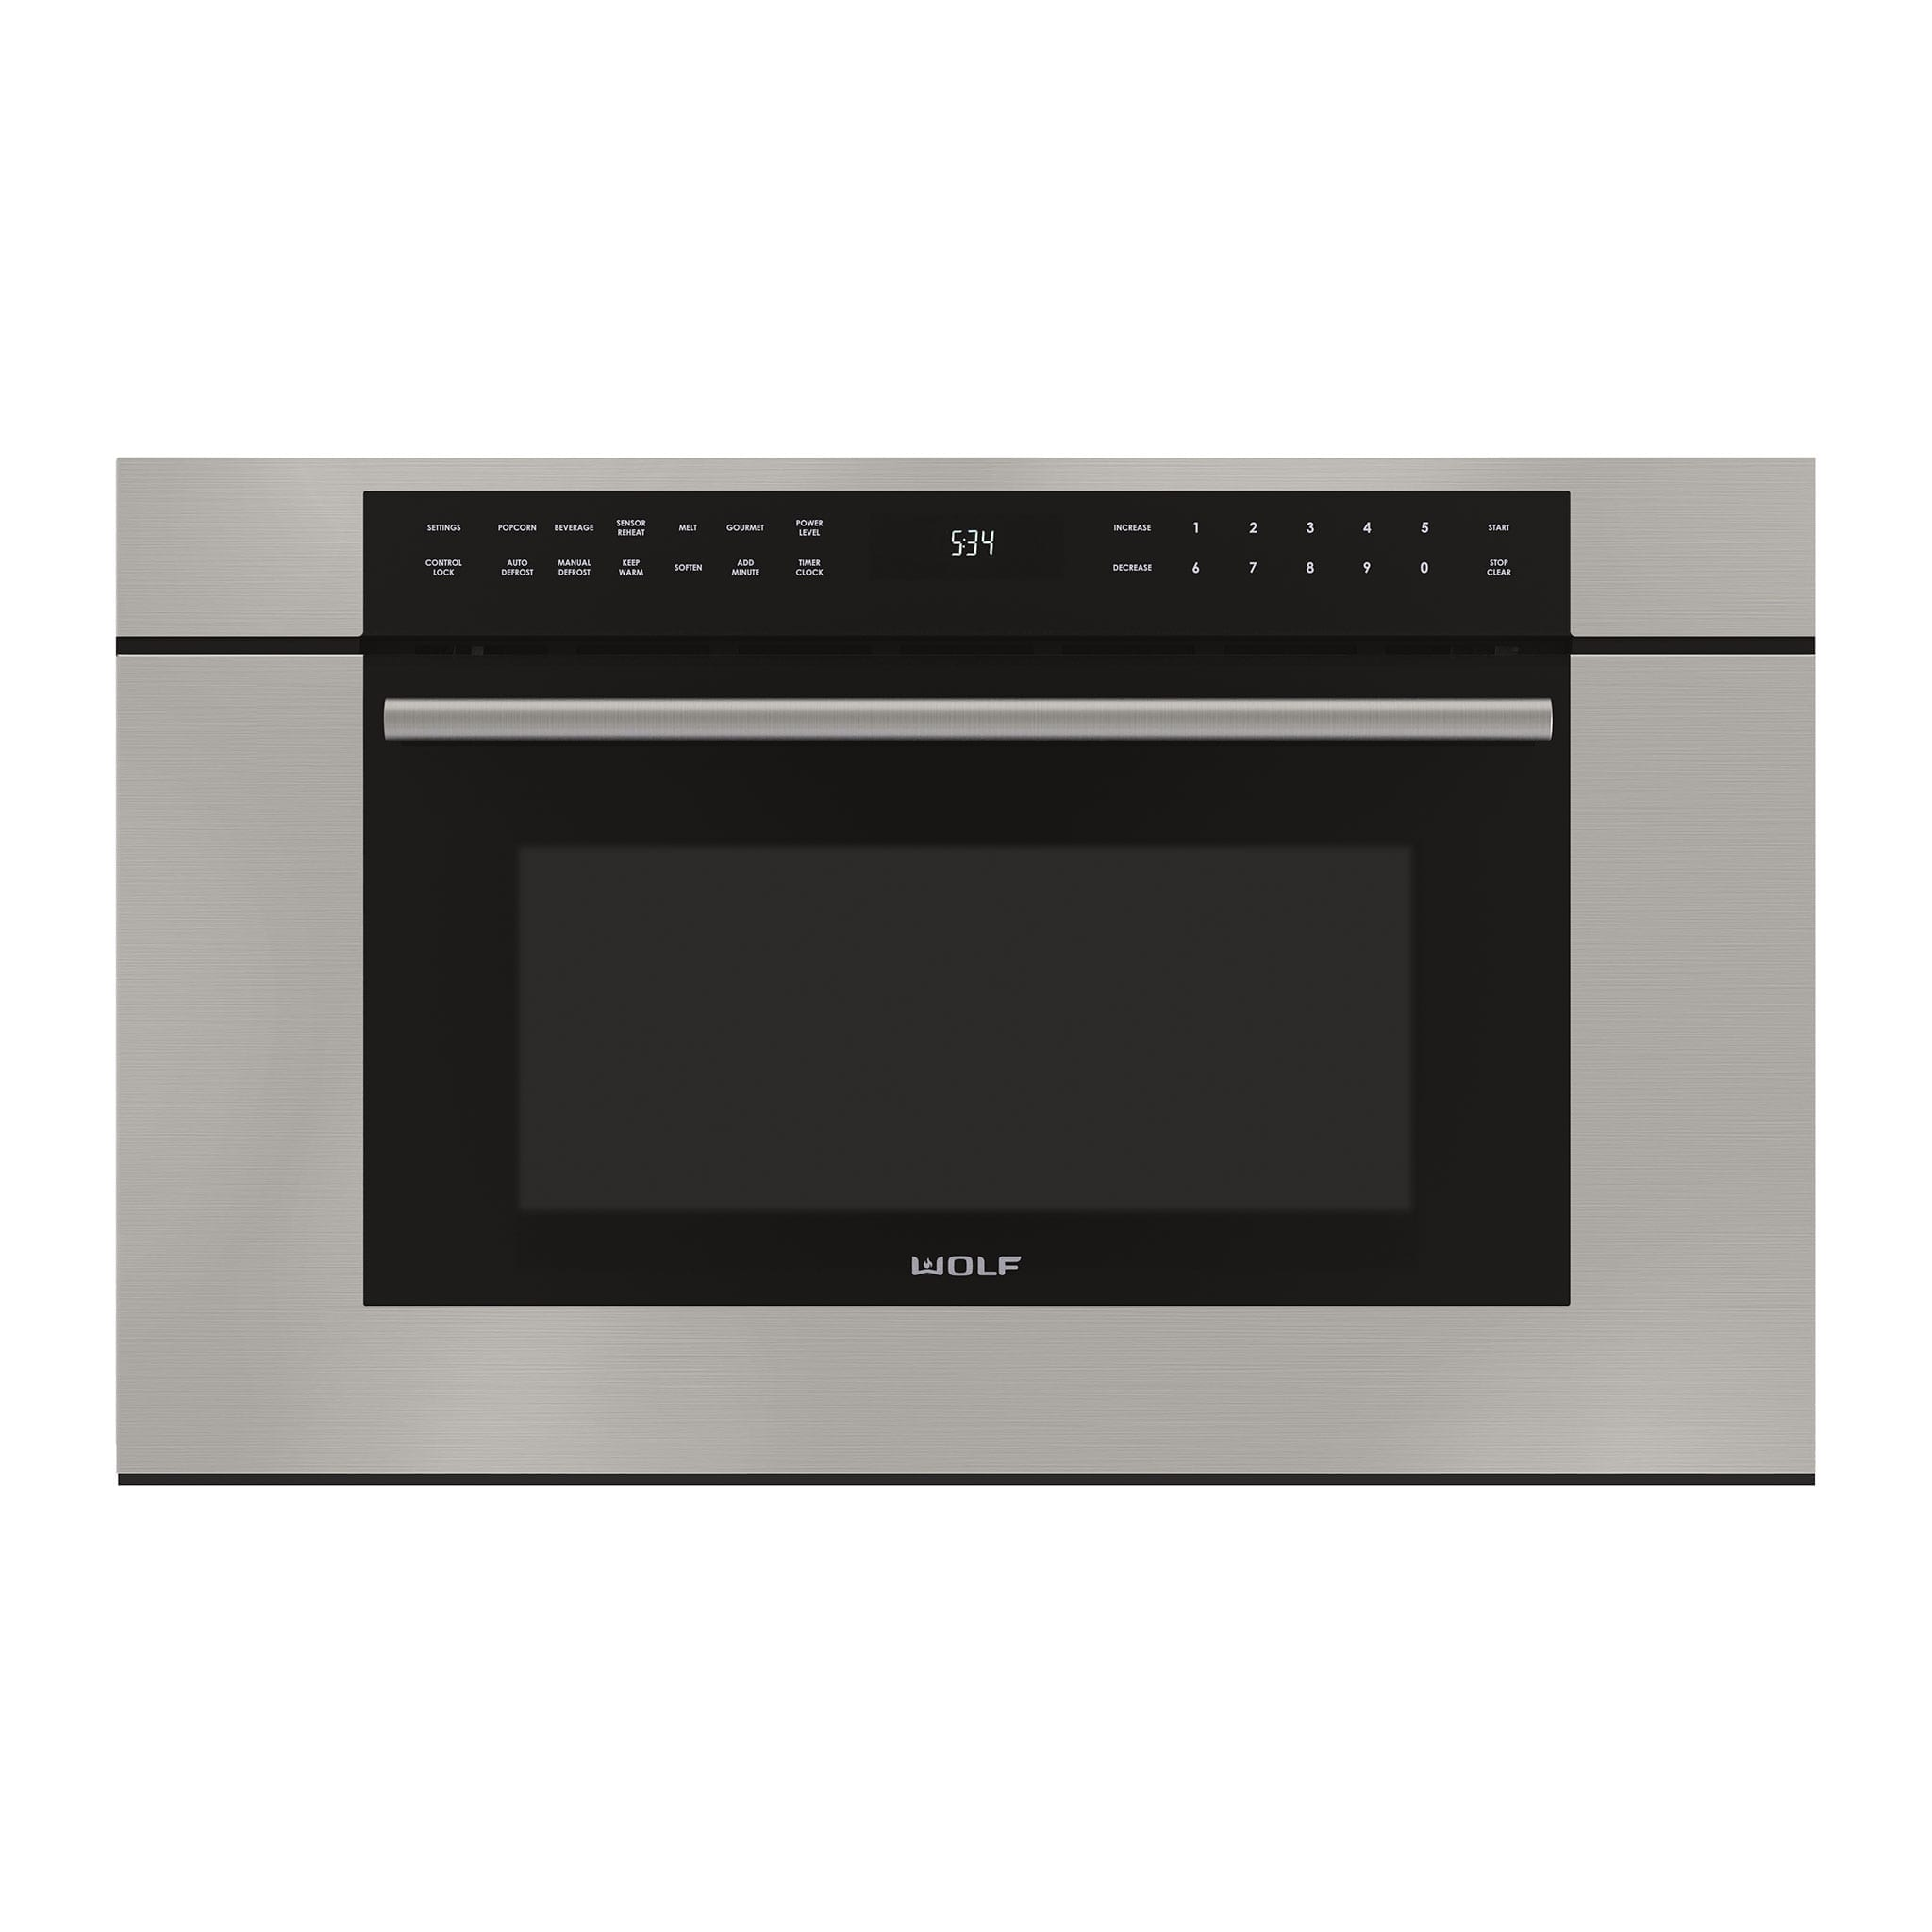 Bon /wolf/microwave Ovens/30 Inch M Series Transitional